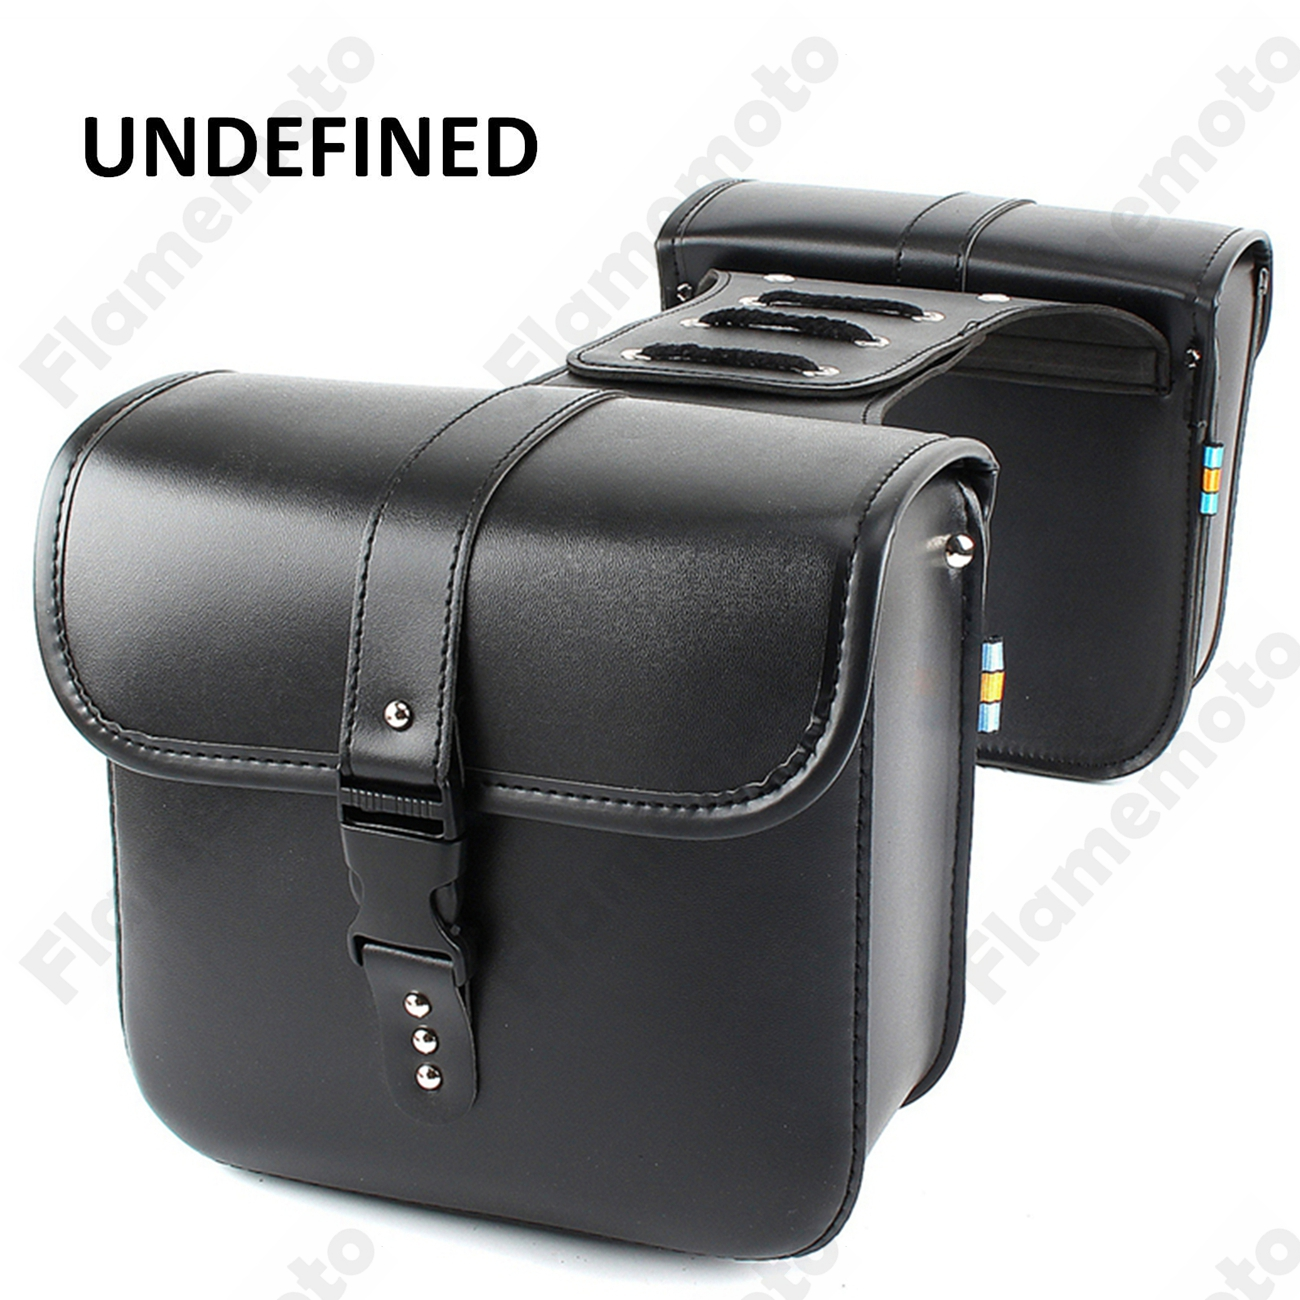 Black PU Leather Motorbike Accessories Parts Side Saddle Bags Tool Luggage Pannier Cruiser UNDEFINED